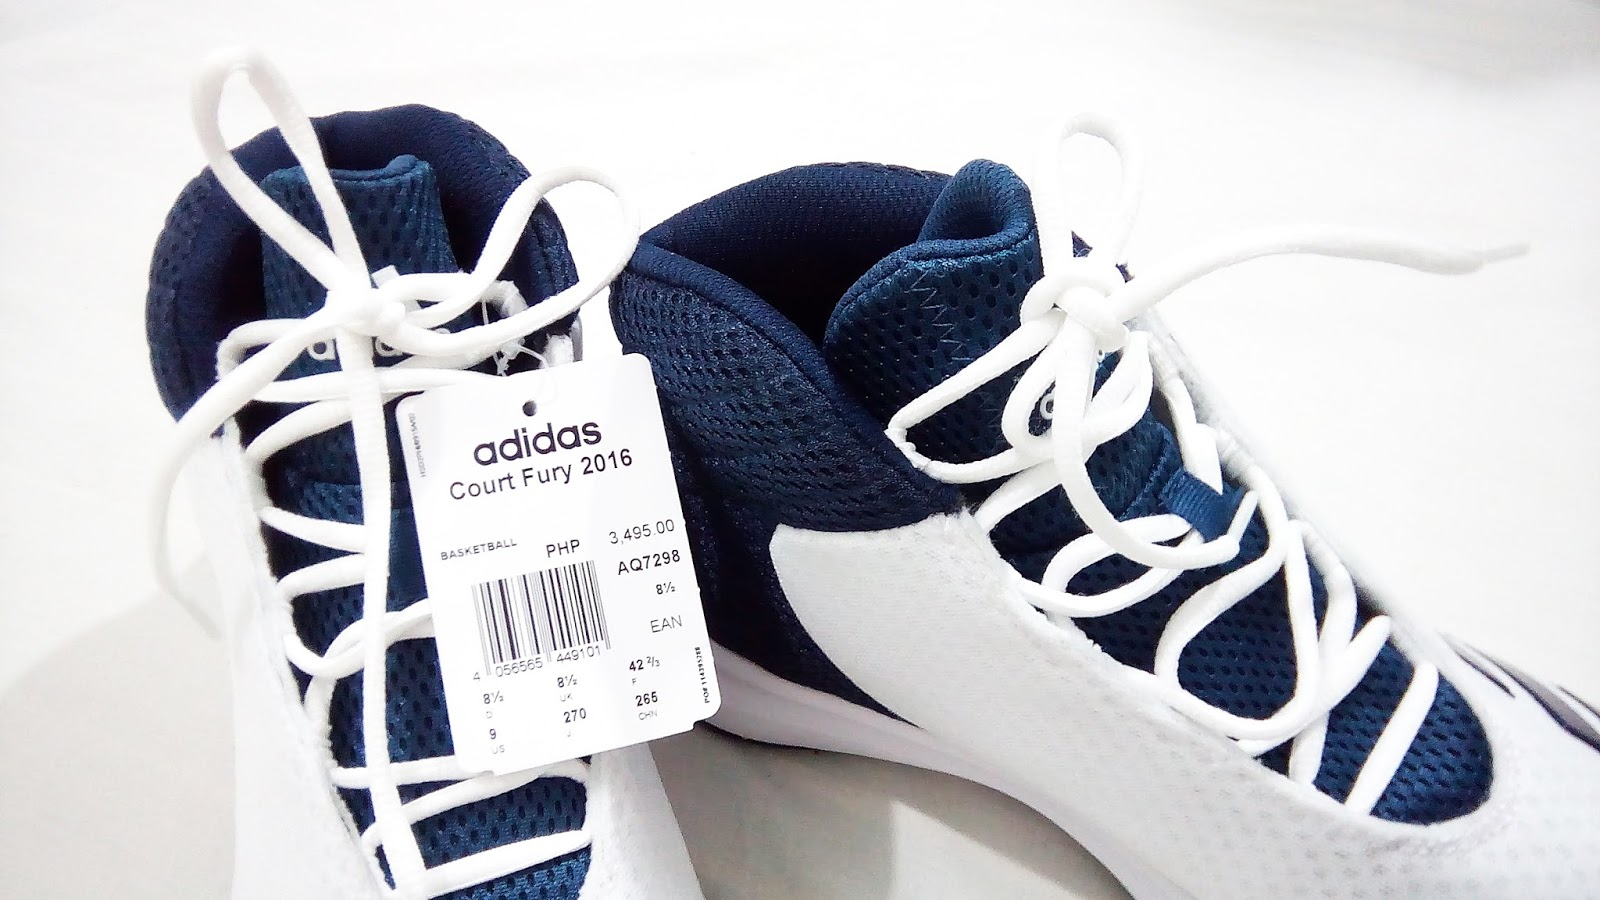 reputable site 37296 1dcf9 ... Brand Adidas Model Court Fury 2016 Mid Shoes Regular Price Php 3,495.00.